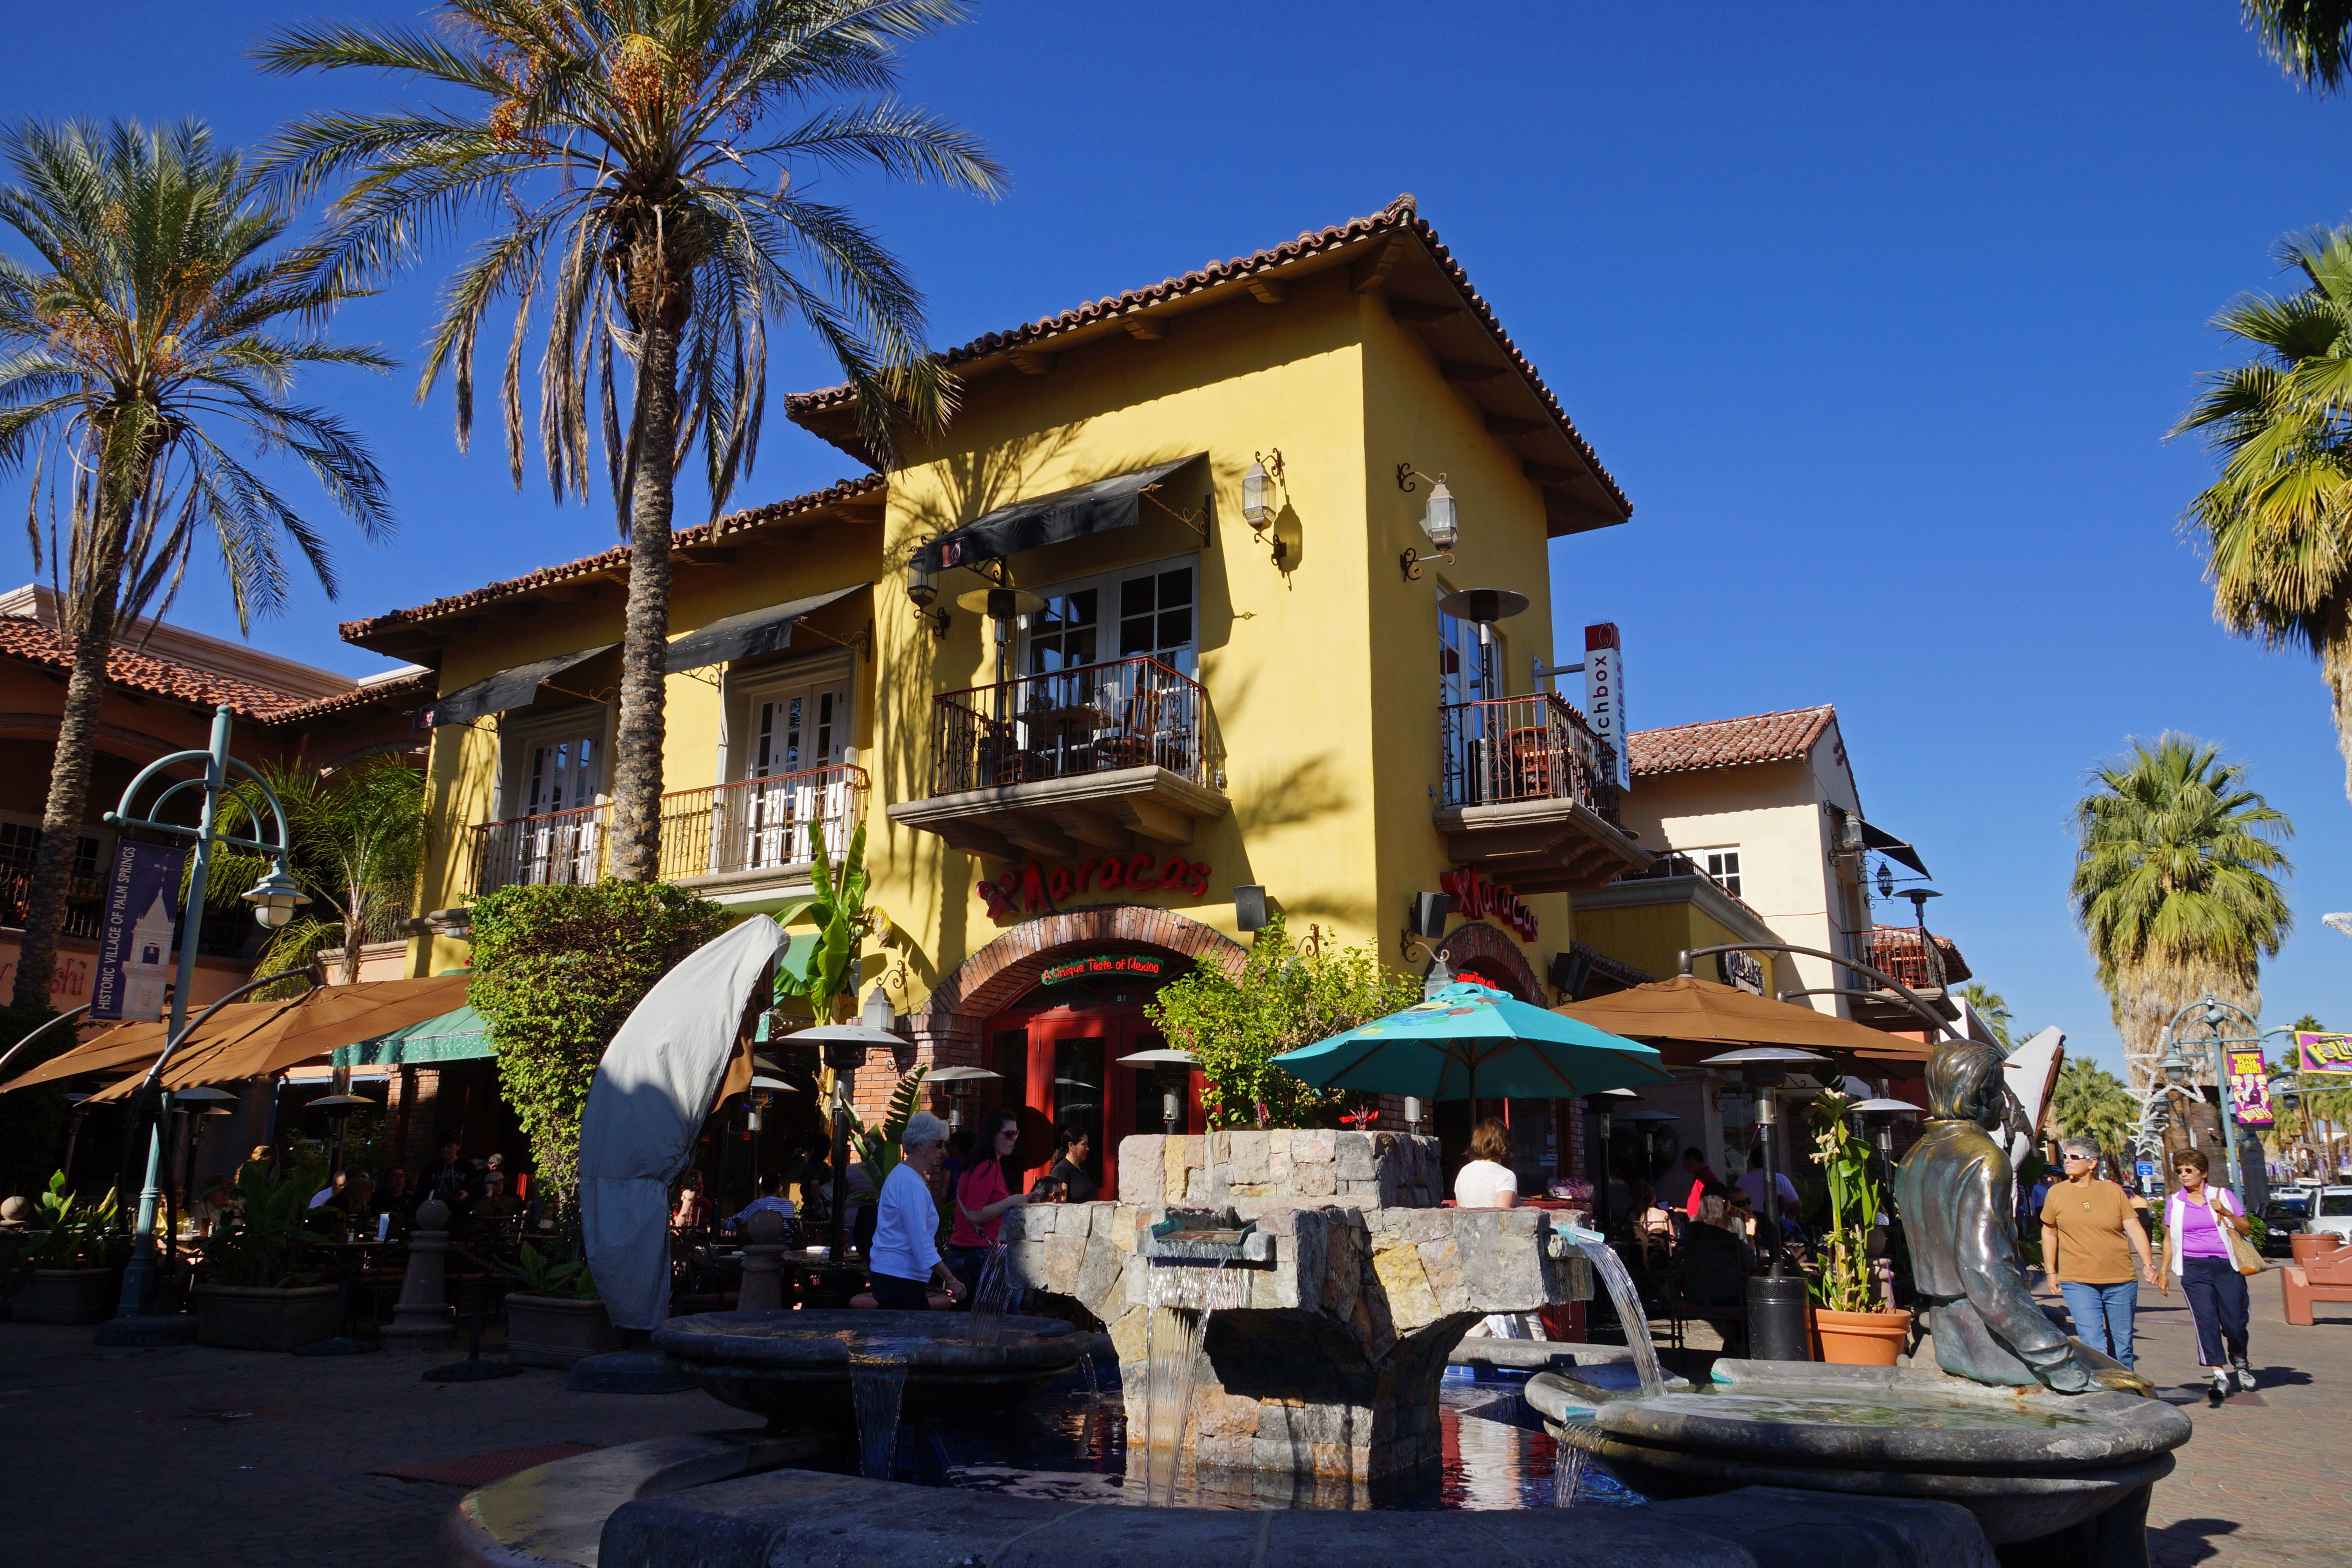 Great Mexican Food And Outdoor Dining At Maracas In The